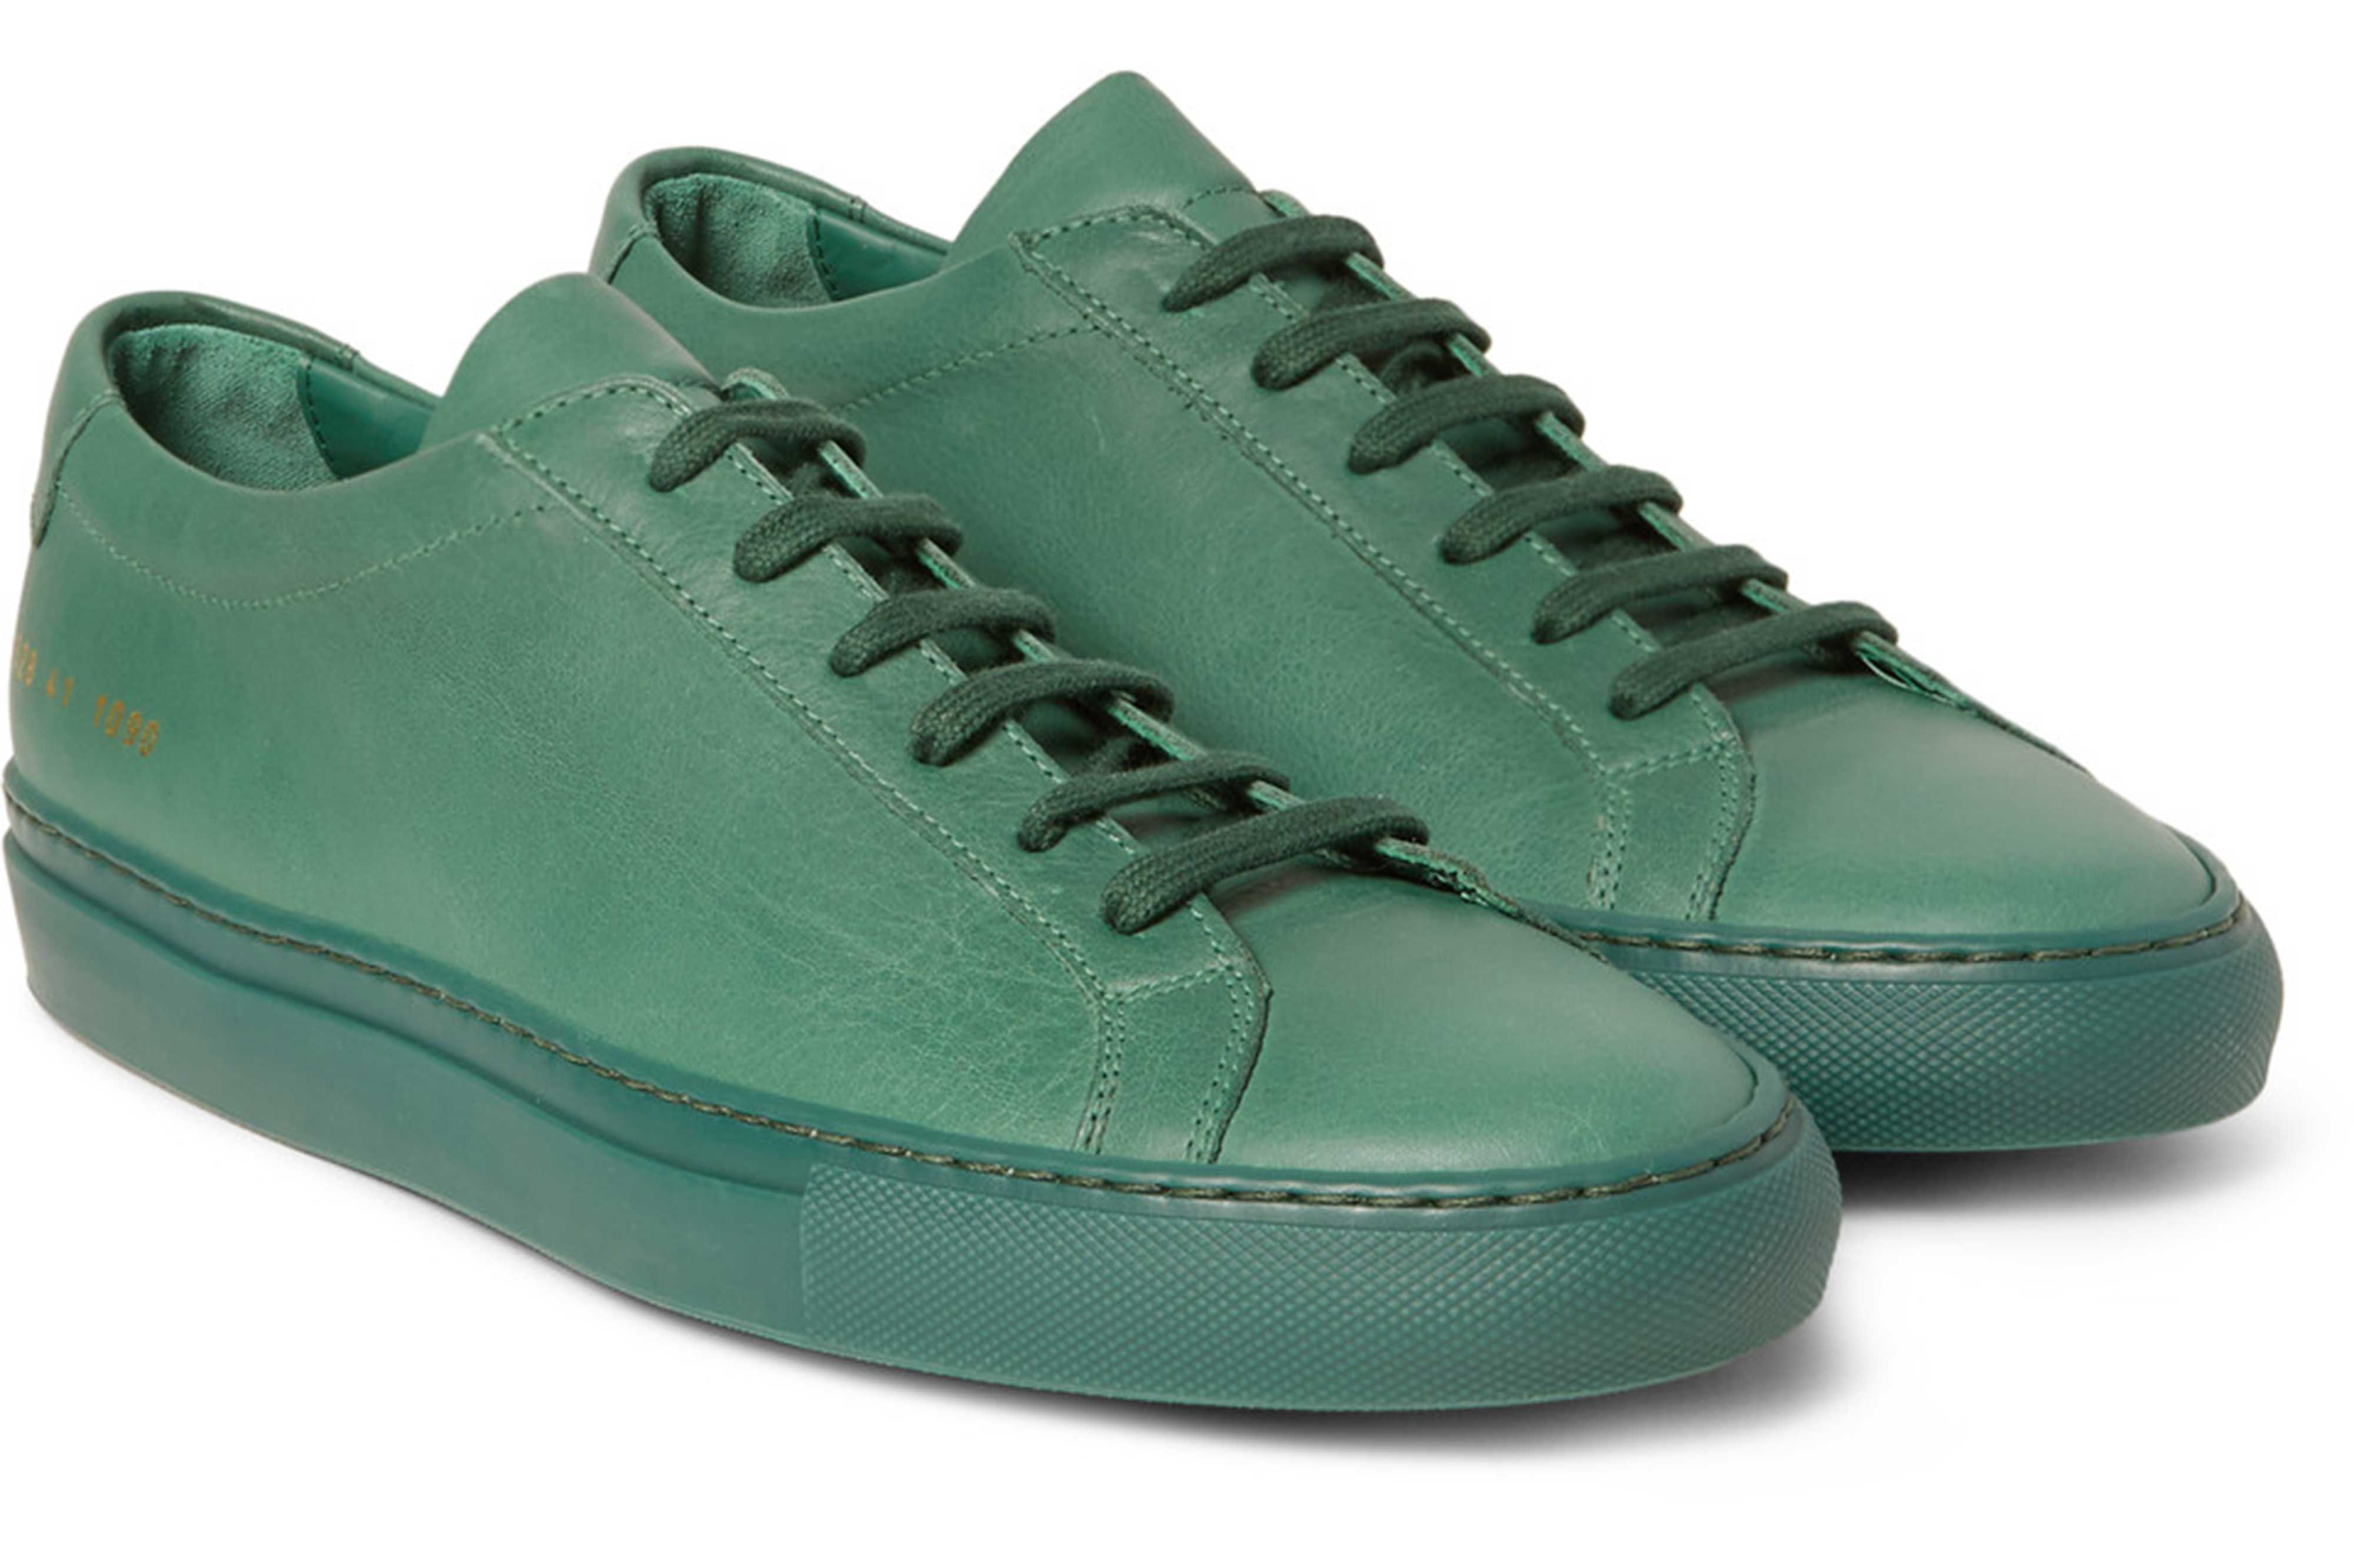 info for 138ff a0b35 Sneakers to Wear With a Suit   Men s Health